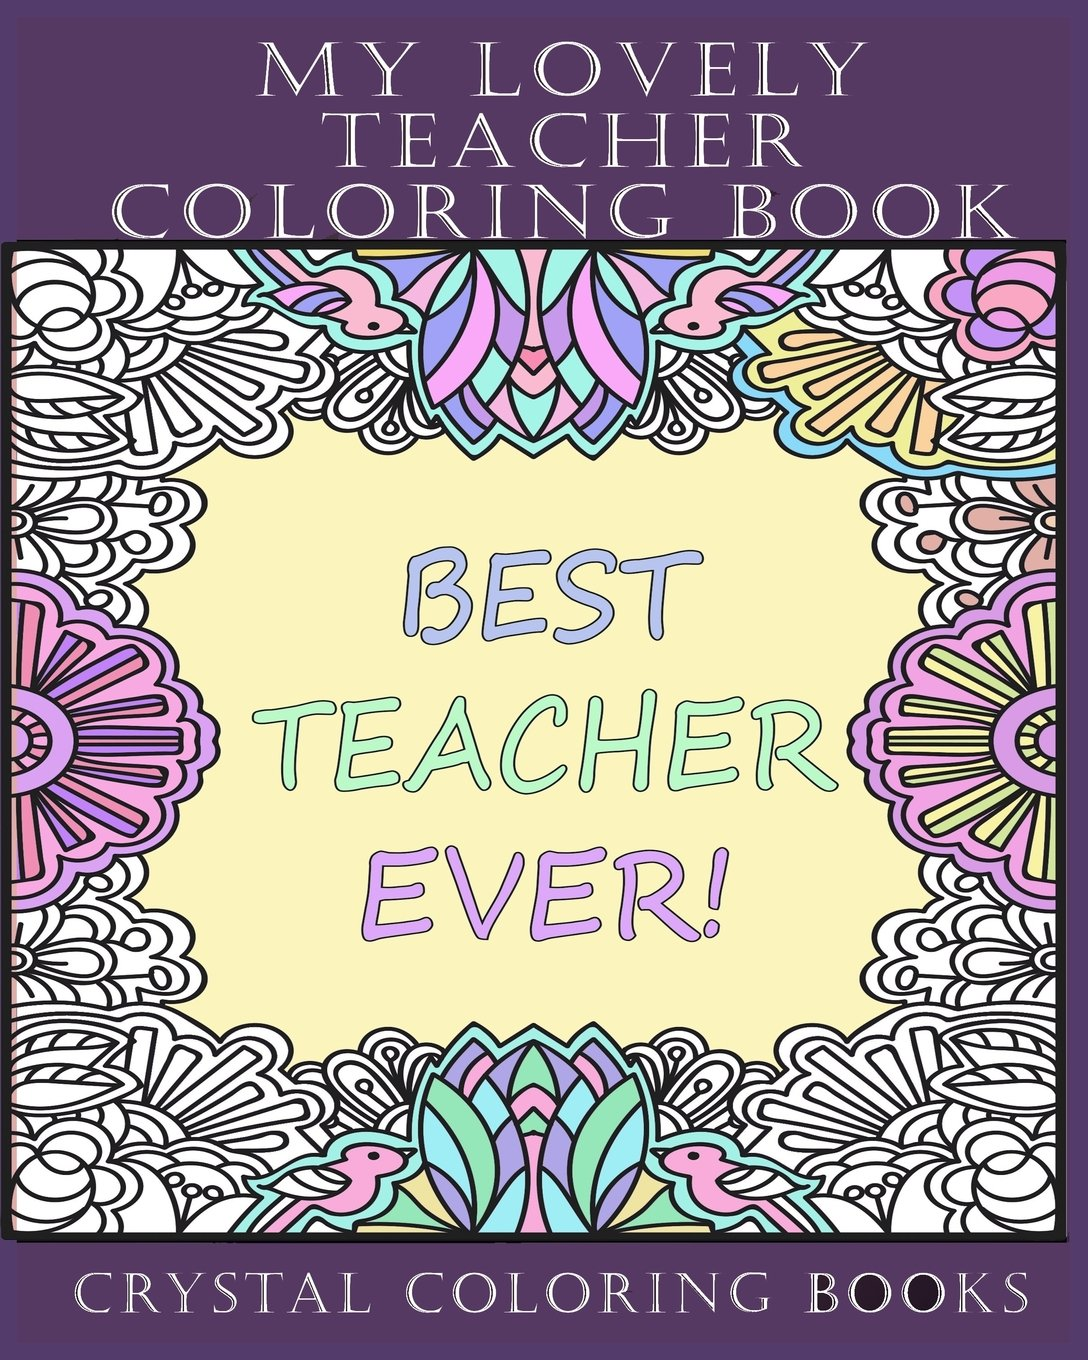 My Lovely Teacher Coloring Book 30 My Lovely Teacher Coloring Pages Stress Relief Teacher Adult Coloring Pages The Perfect Gift For Anyone That Or A Great Thank You Teacher Gift Volume